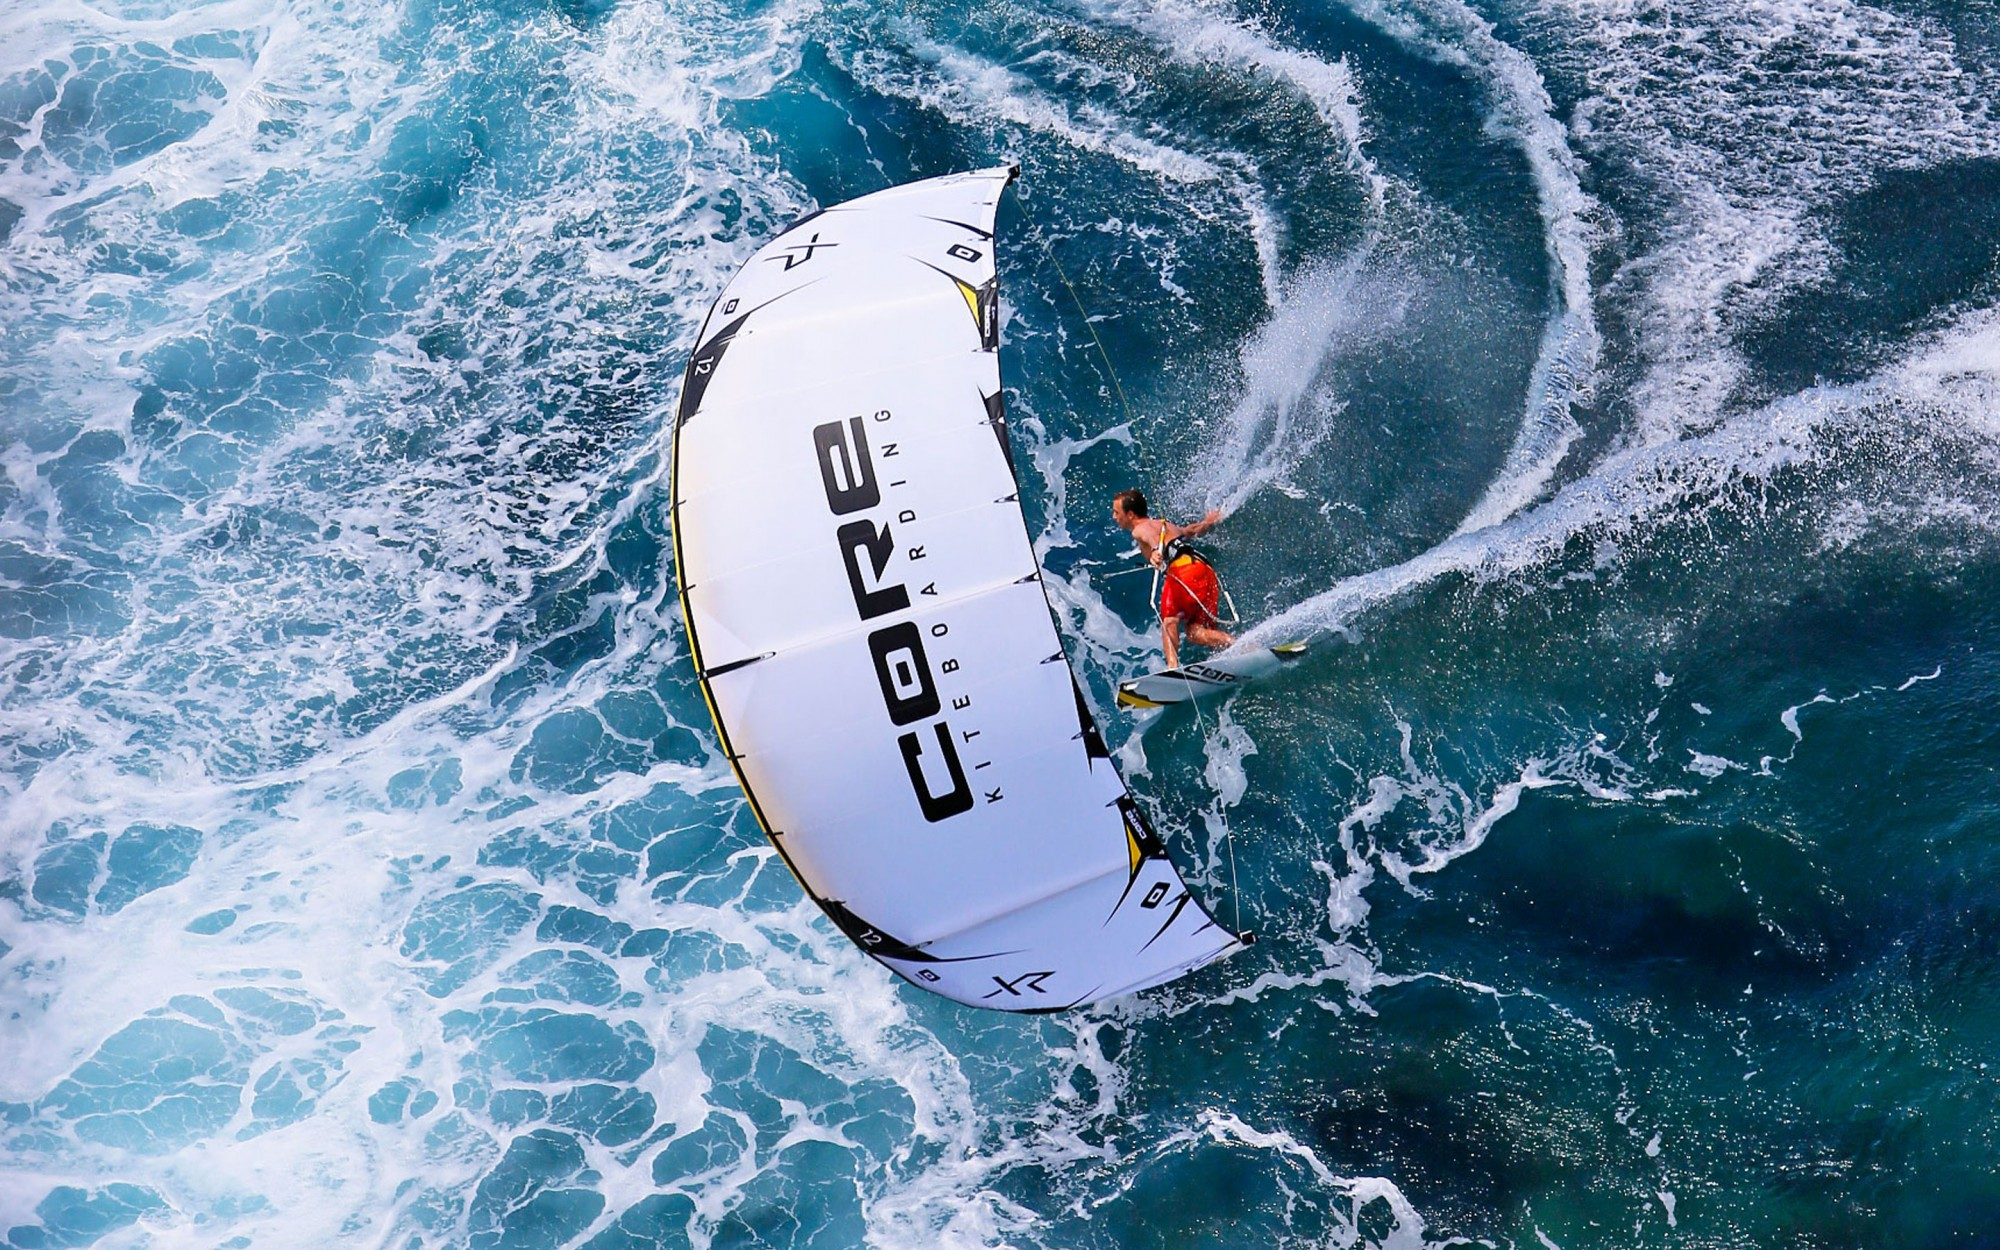 CORE Kiteboarding #gokiting